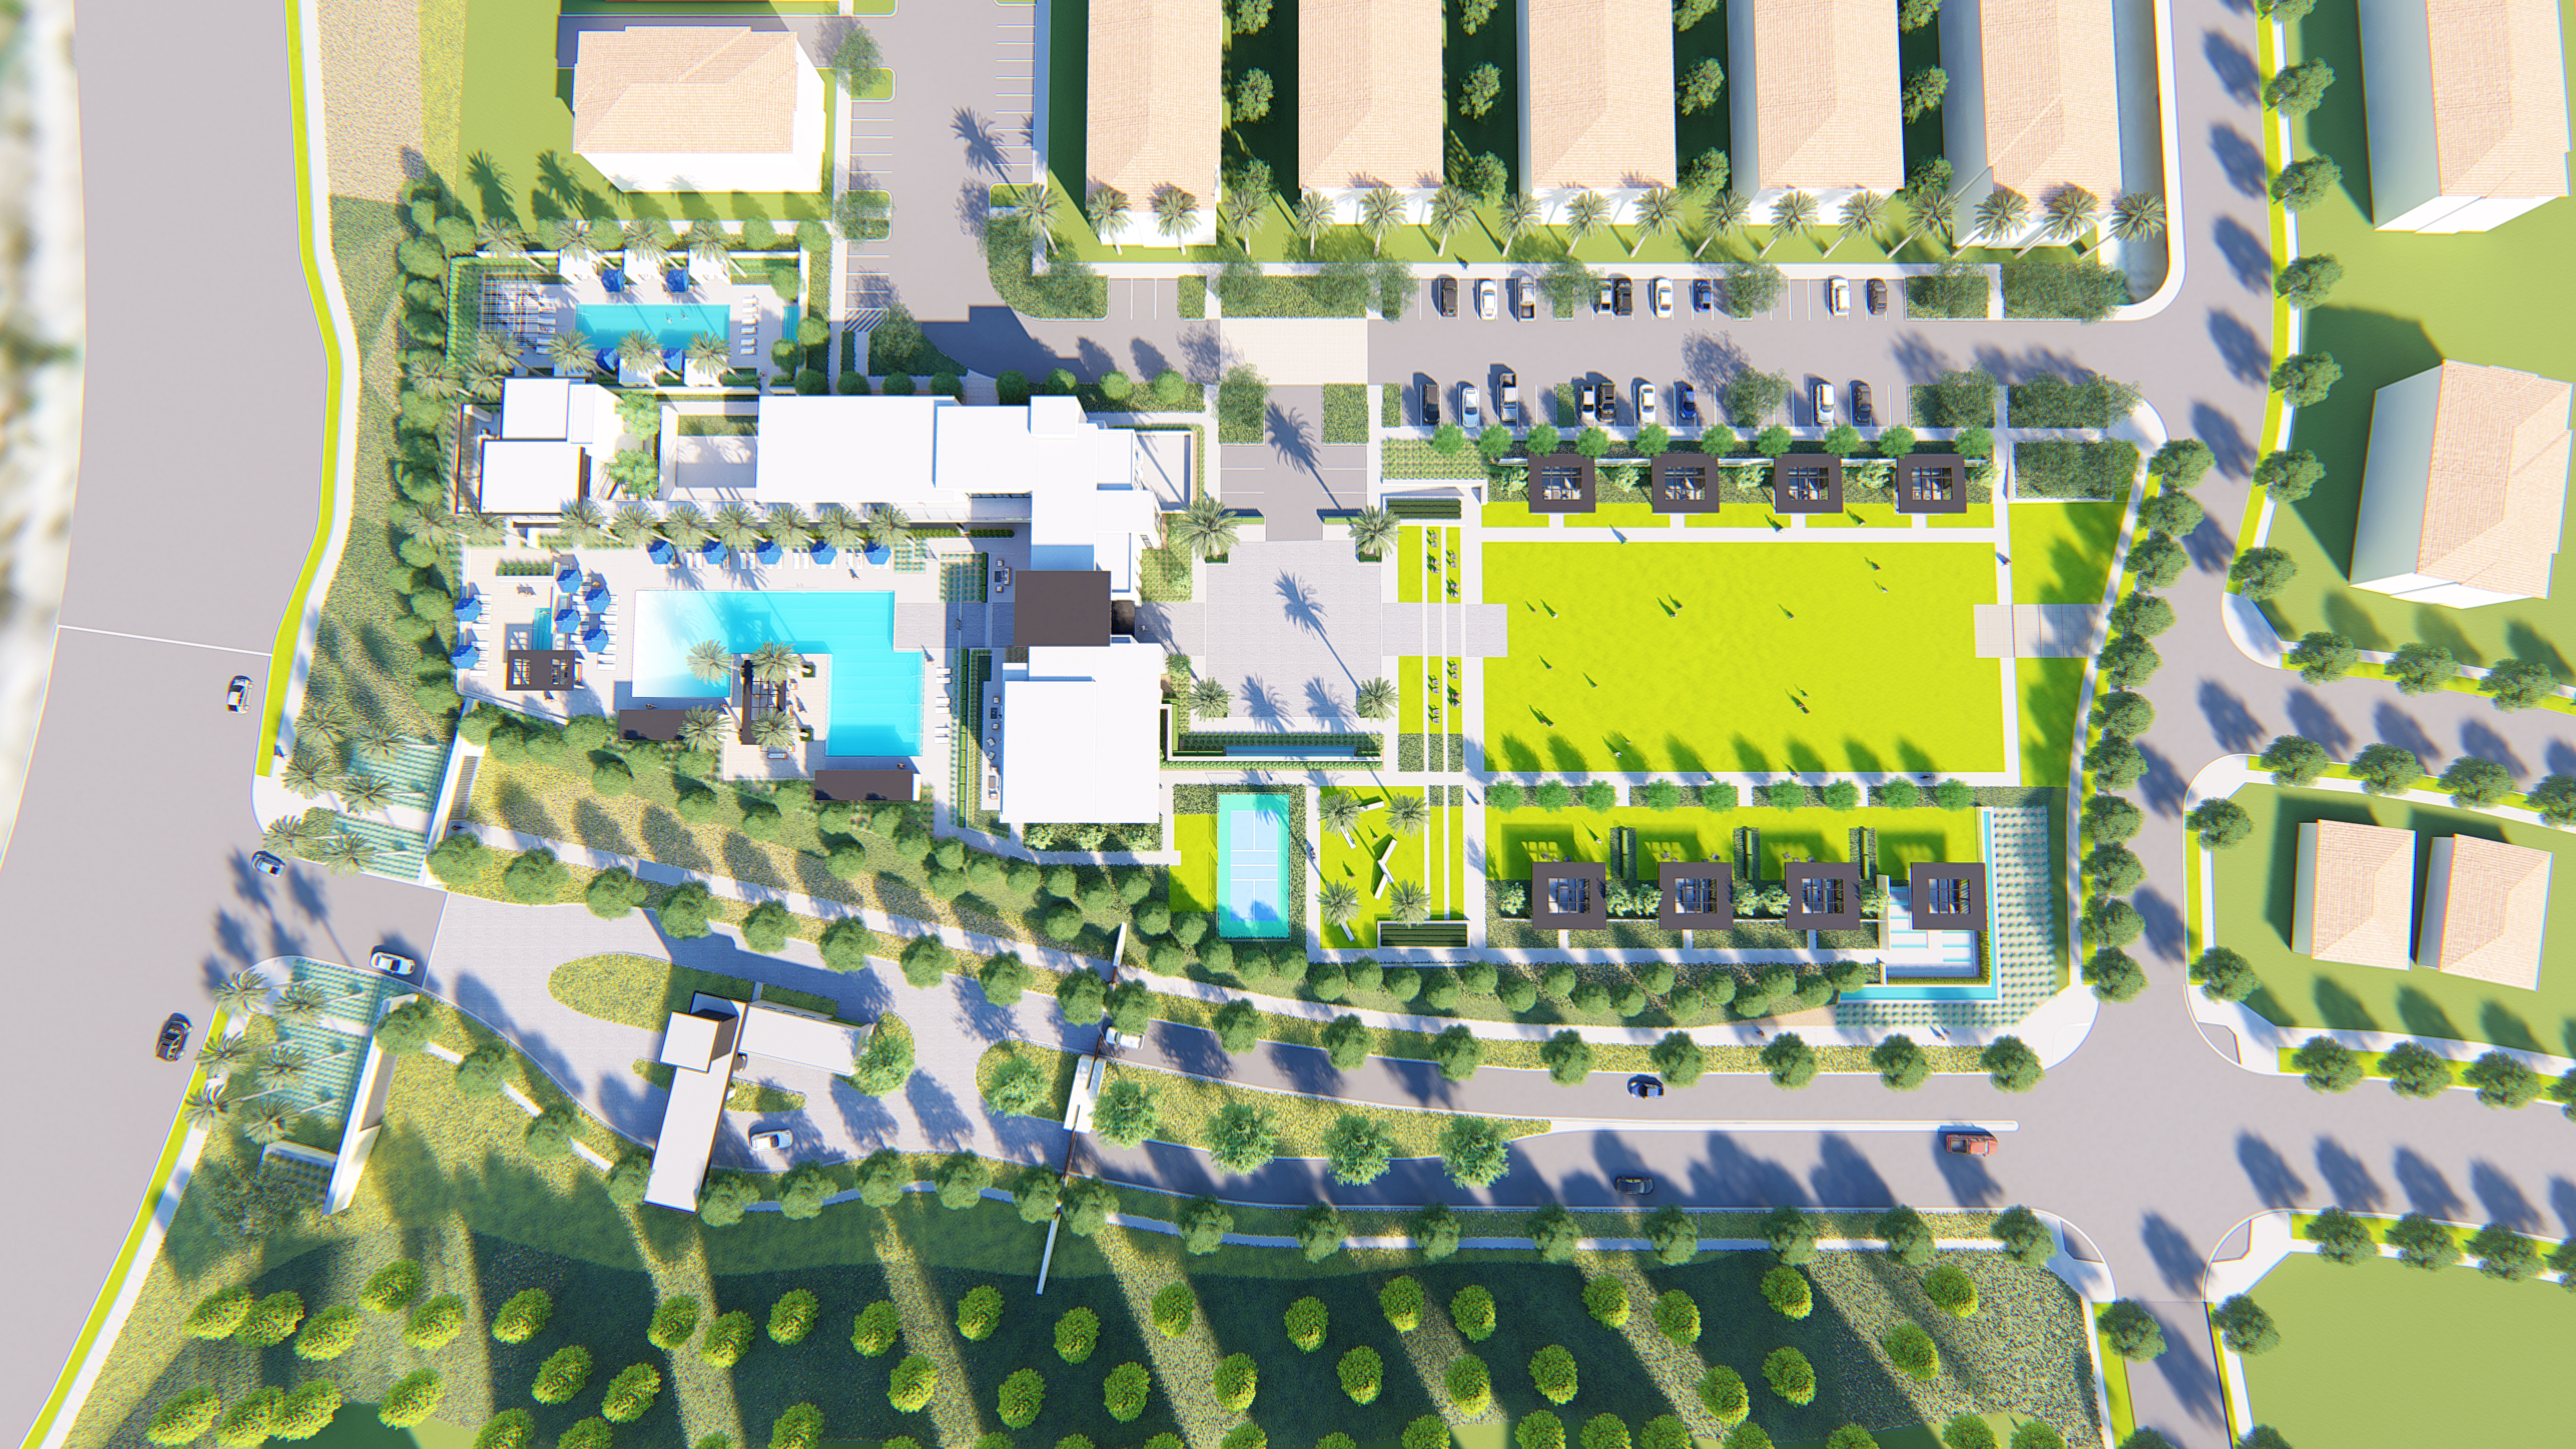 Montebello_Plan View (Rec)